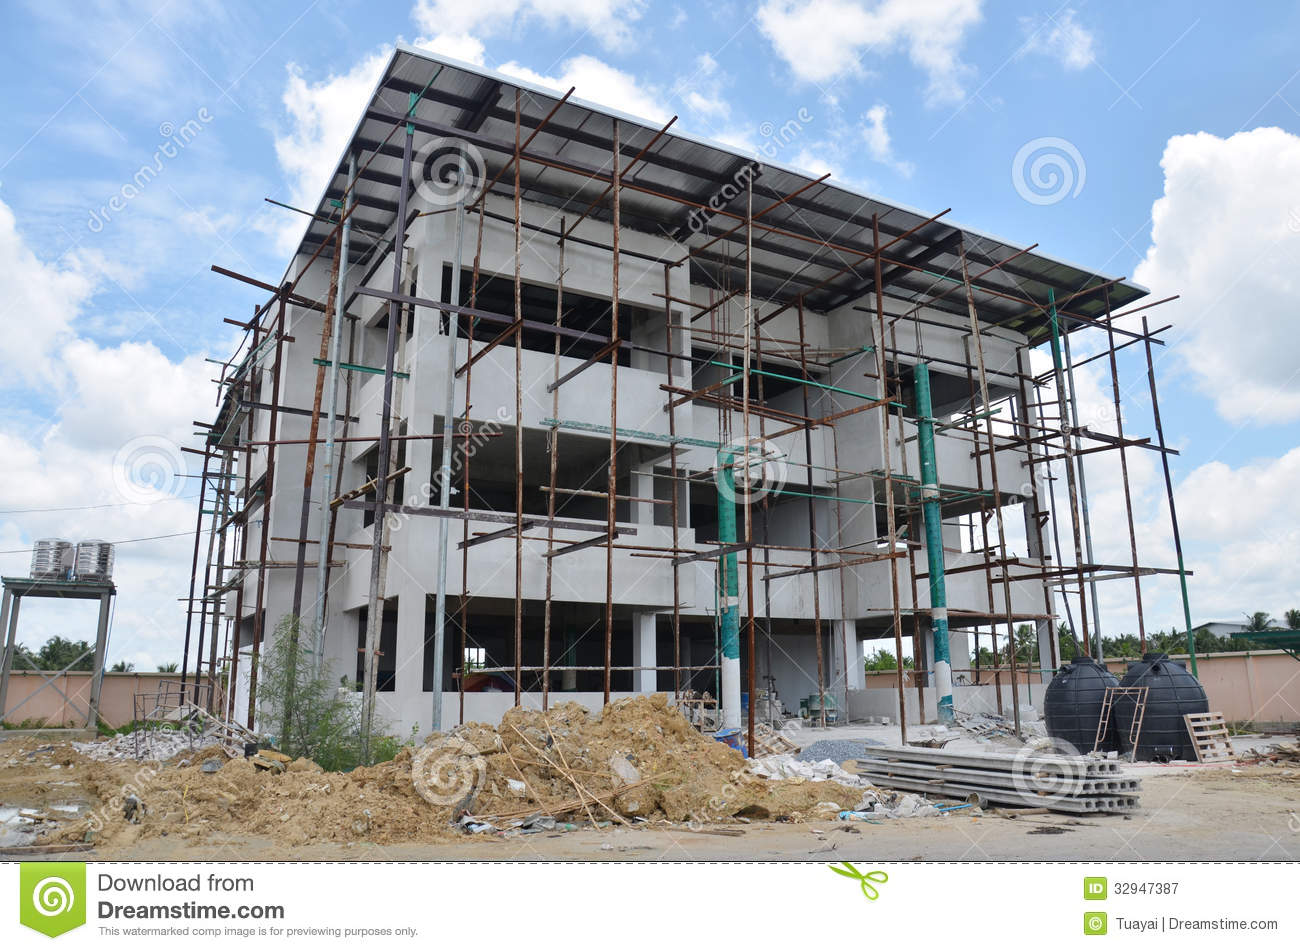 Building office construction at thailand stock image for Building construction types for insurance